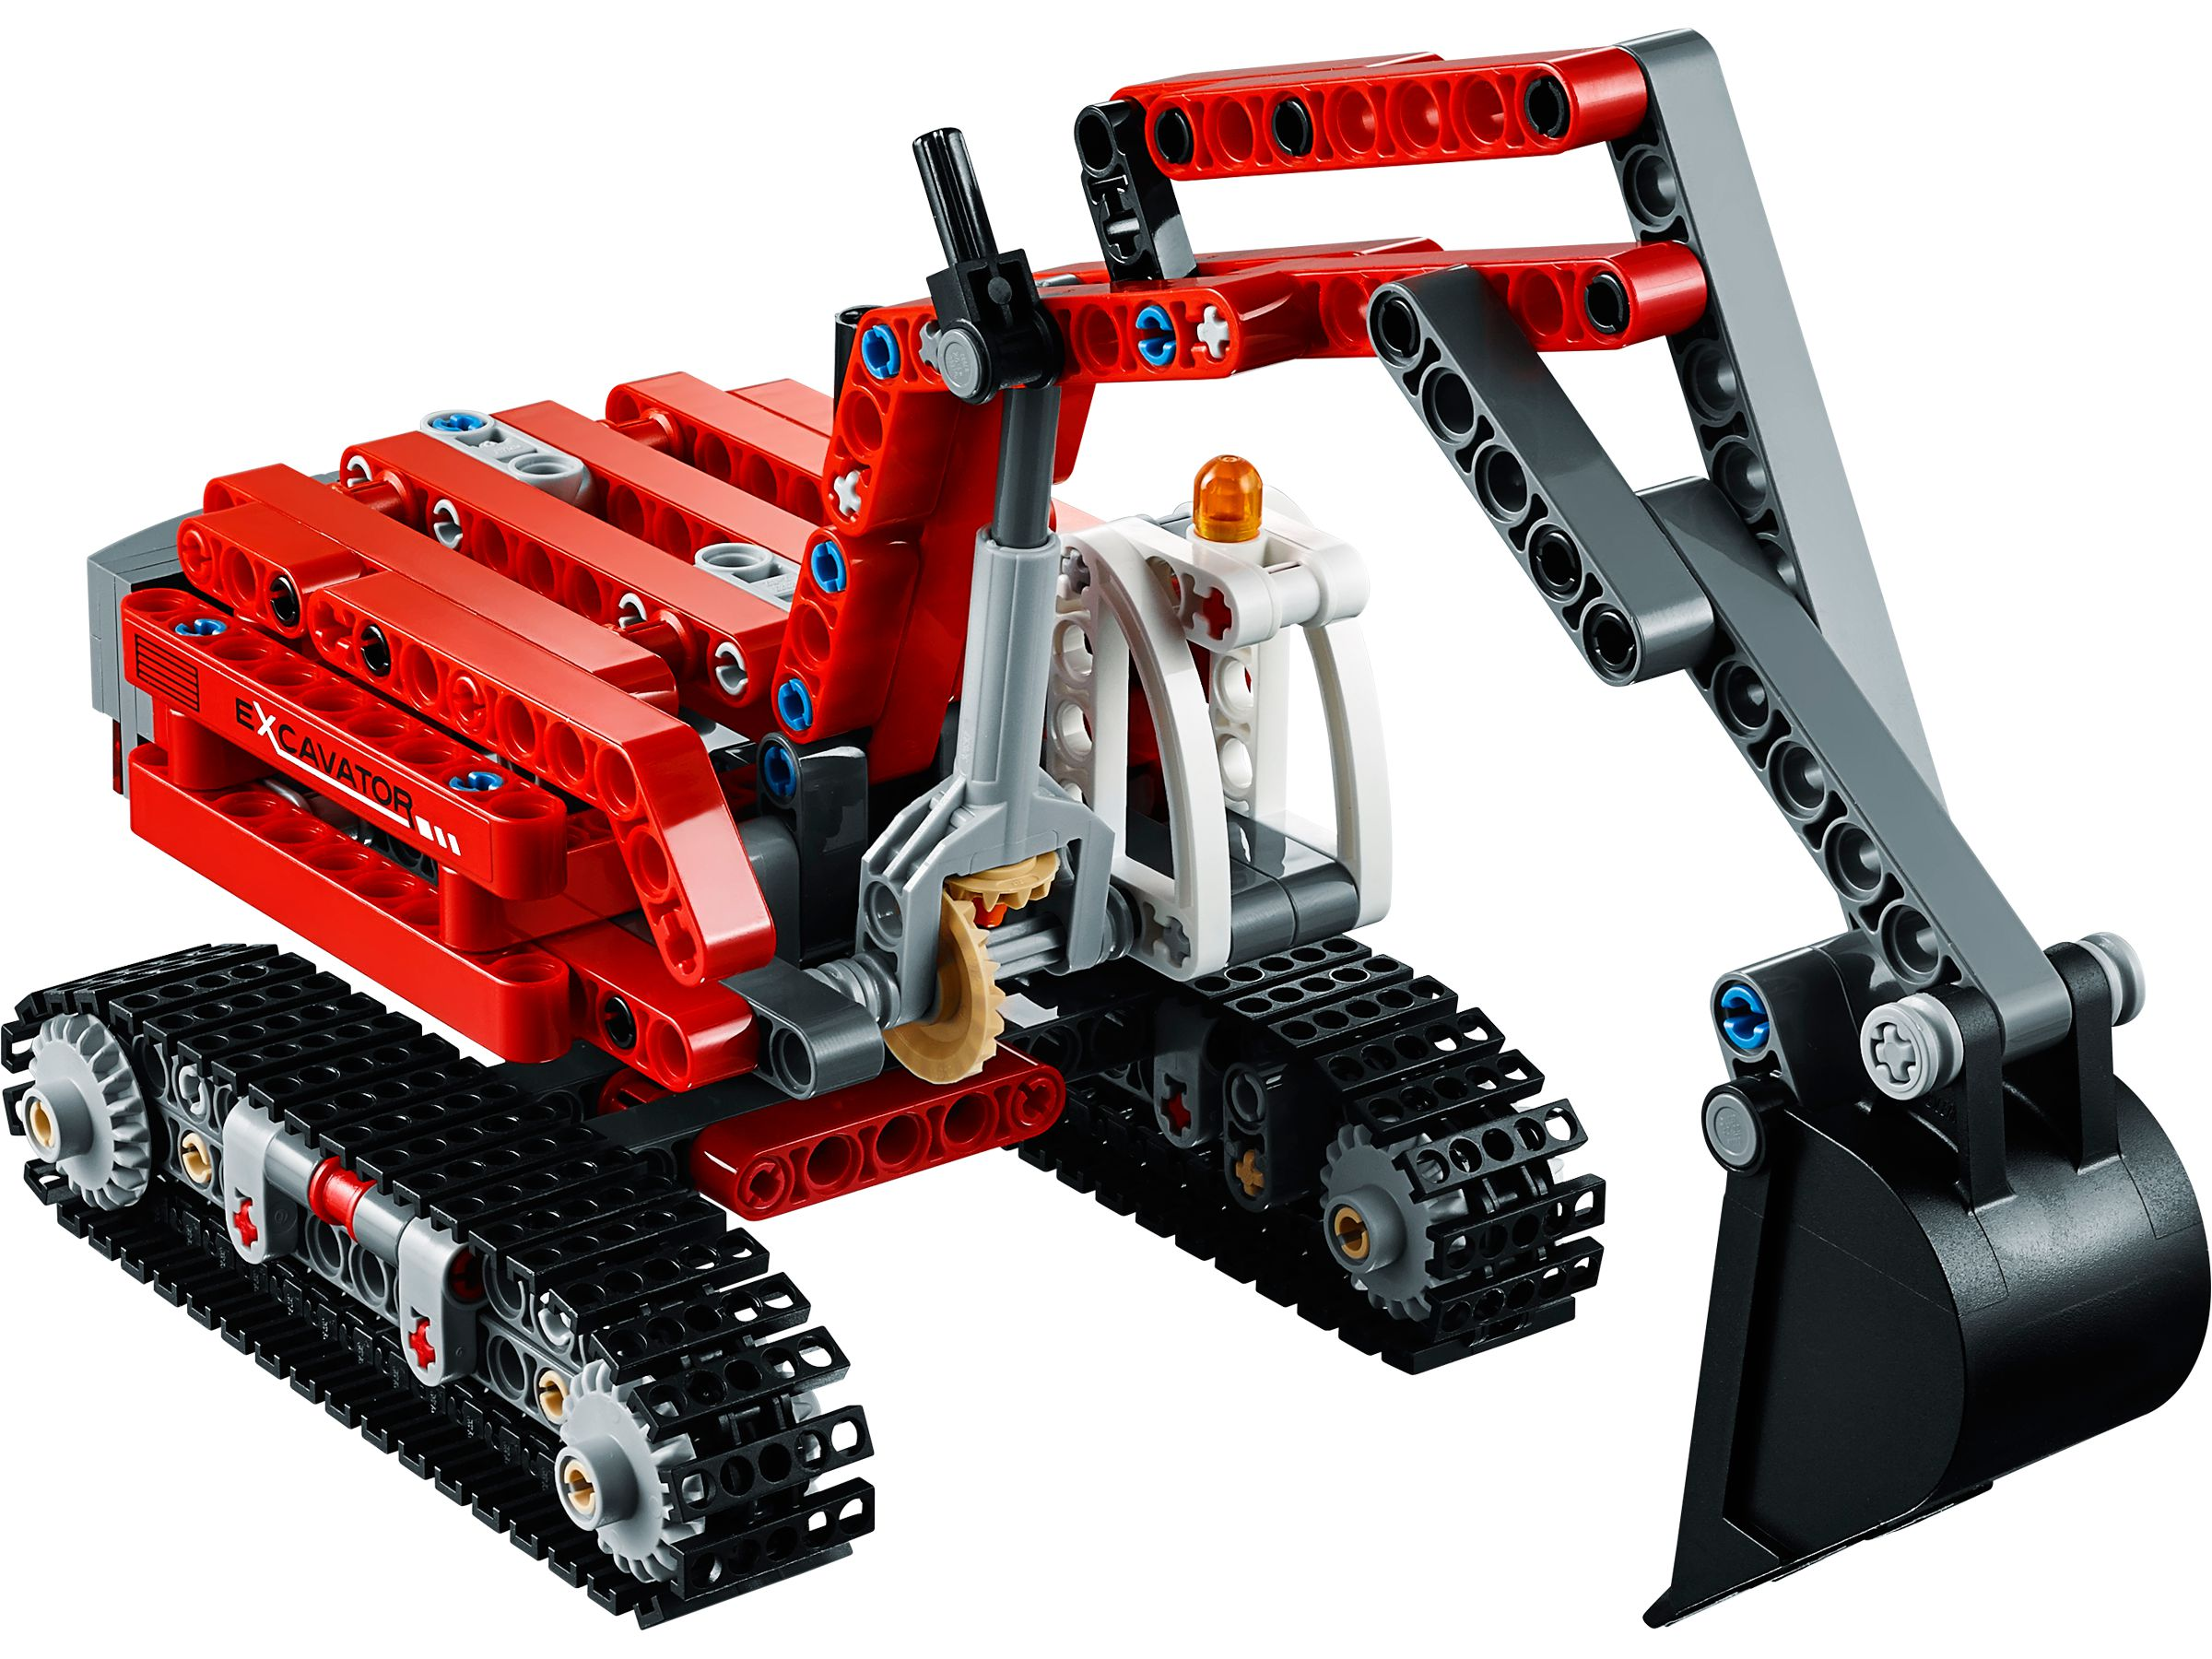 lego 42023 baustellen set technic 2014 construction crew brickmerge. Black Bedroom Furniture Sets. Home Design Ideas